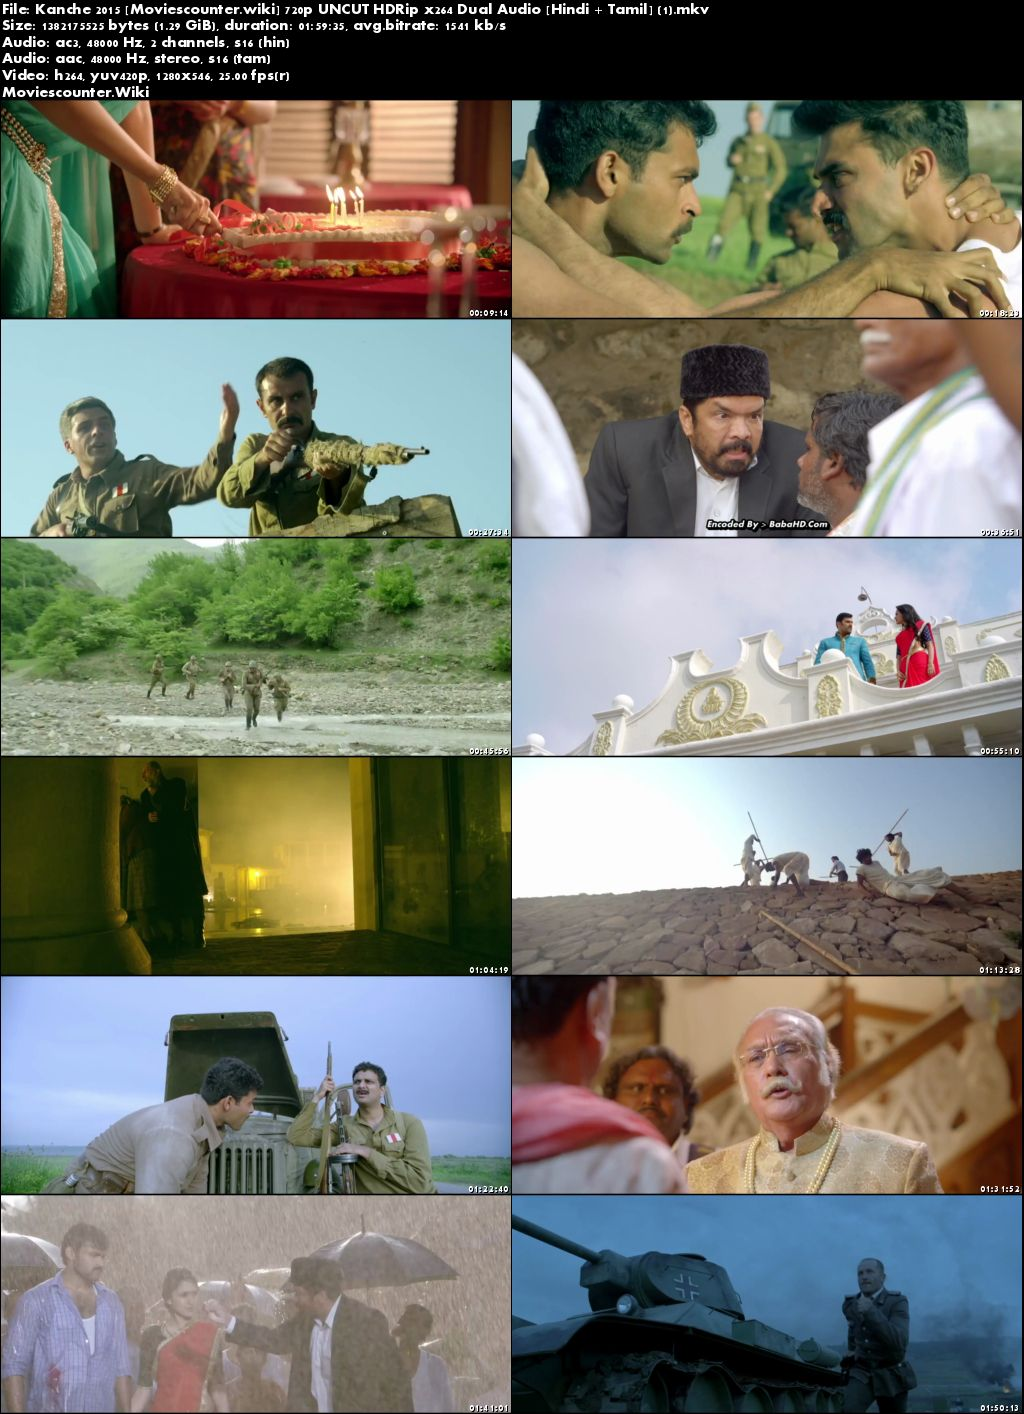 Screen Shots Kanche 2015 Hindi Dubbed HD 720p